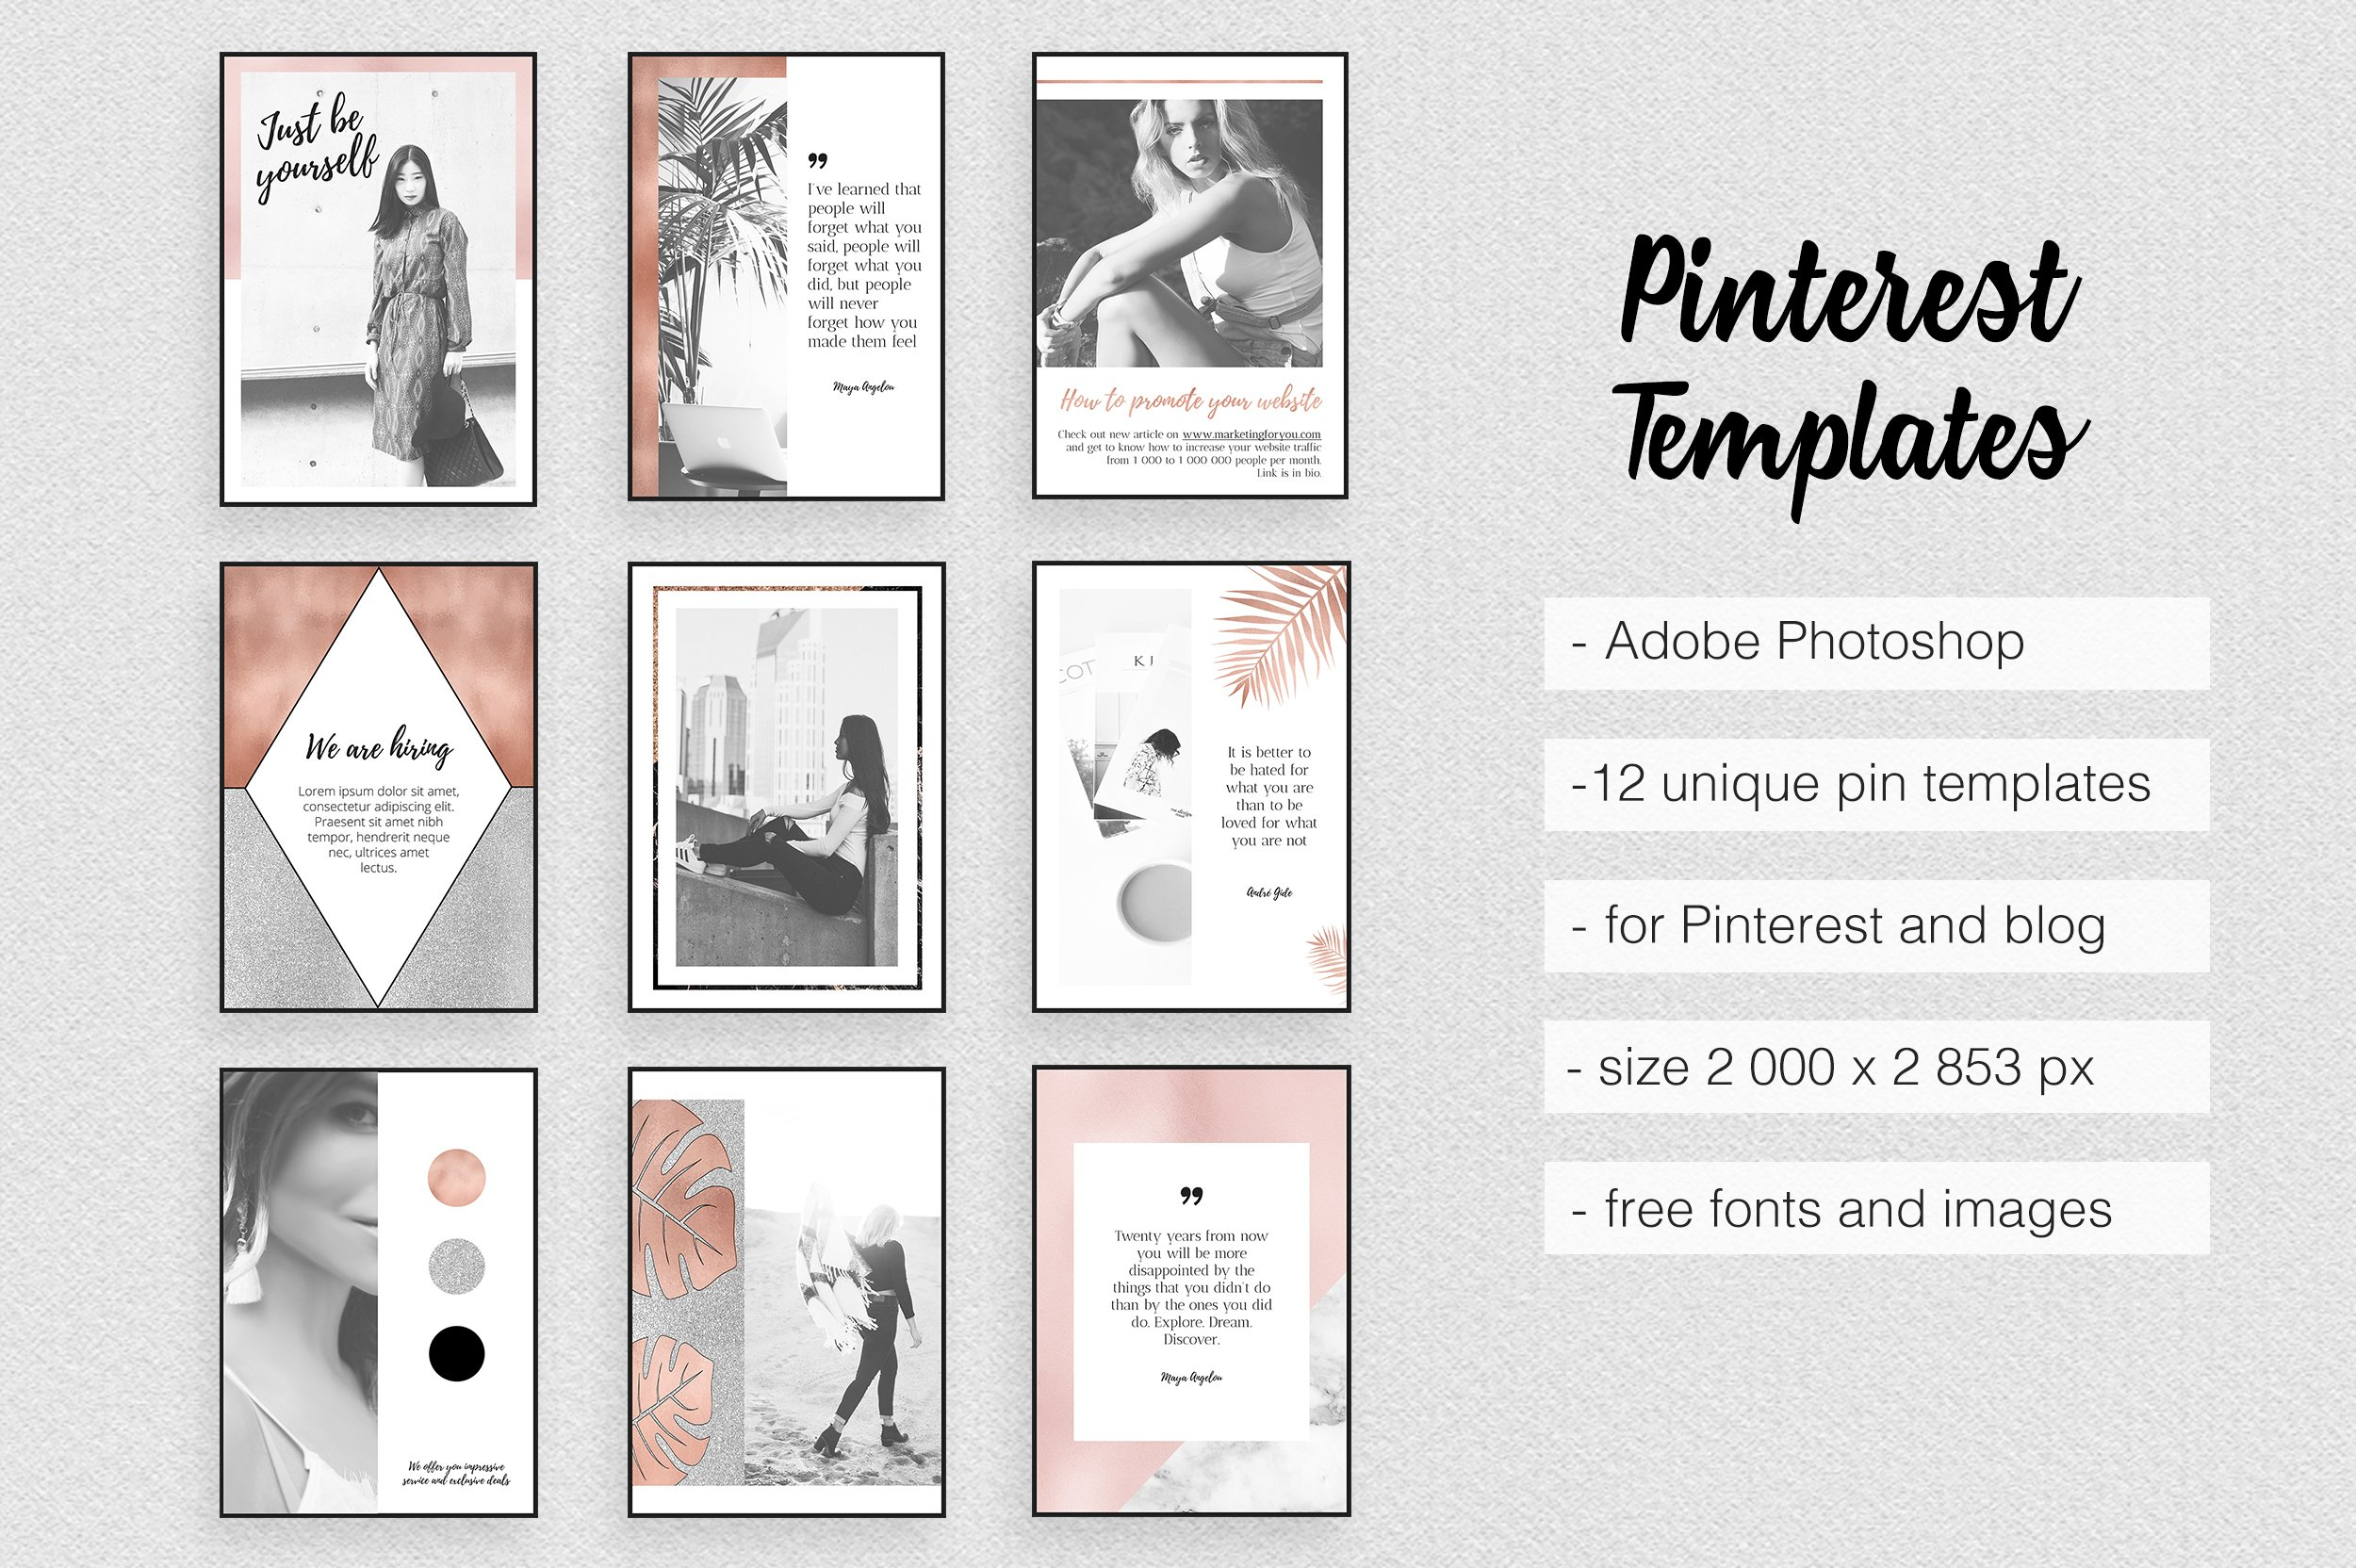 Pinterest Templates Rose Gold Pinterest Templates Creative Market